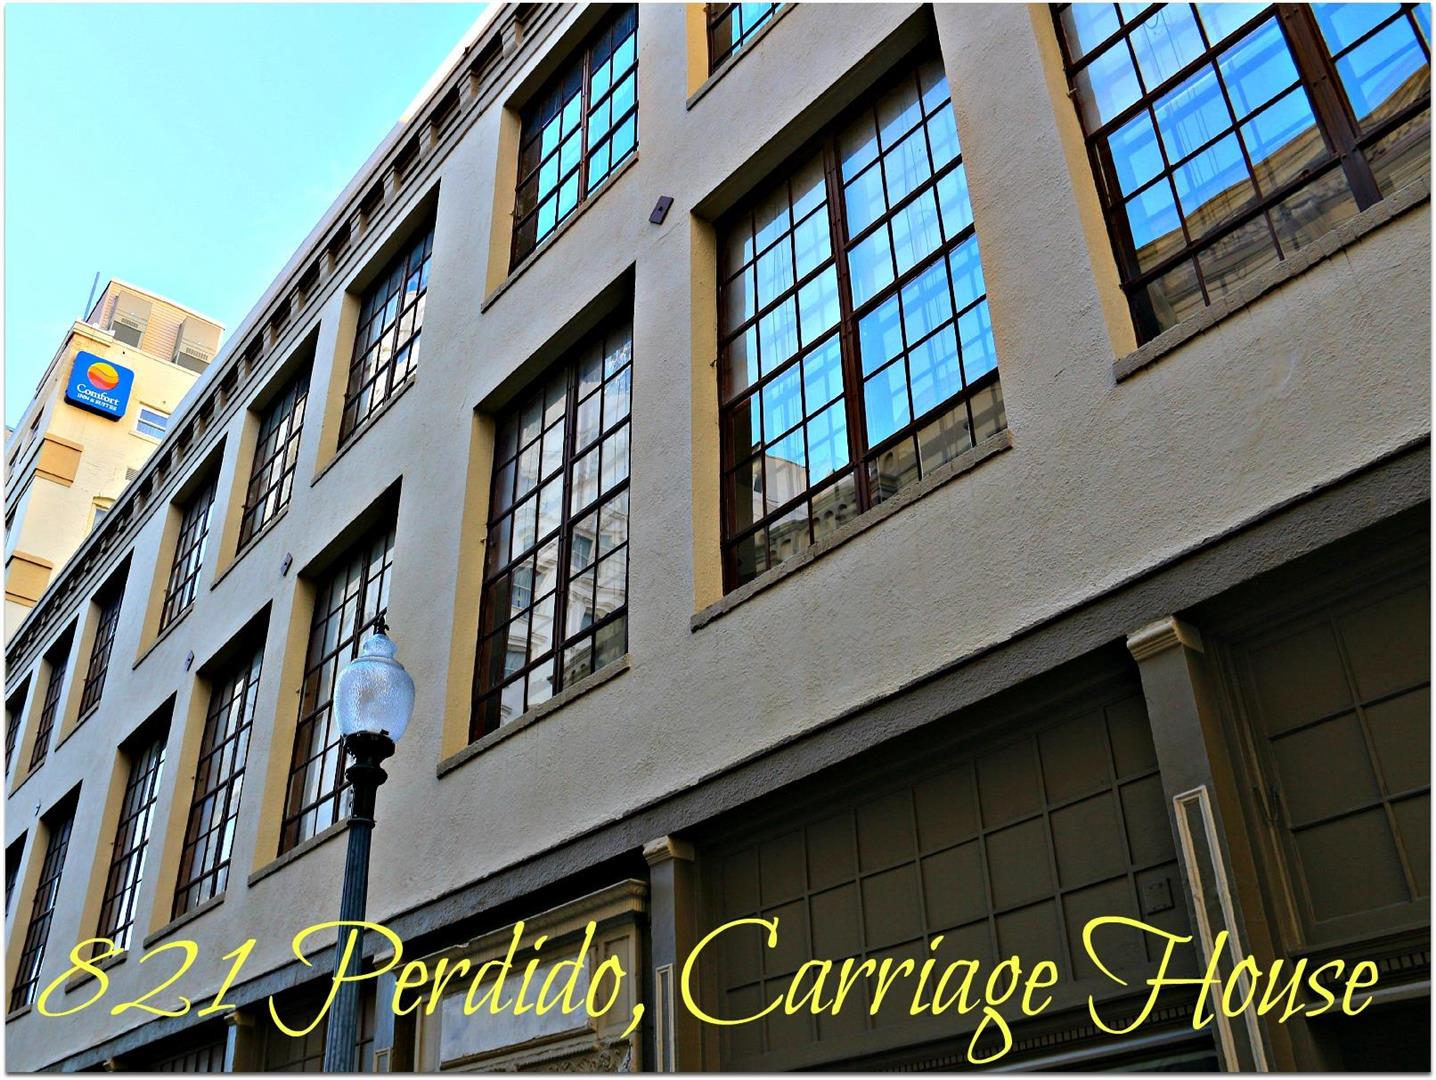 821PerdidoStreet,CarriageHouseCondos.jpg